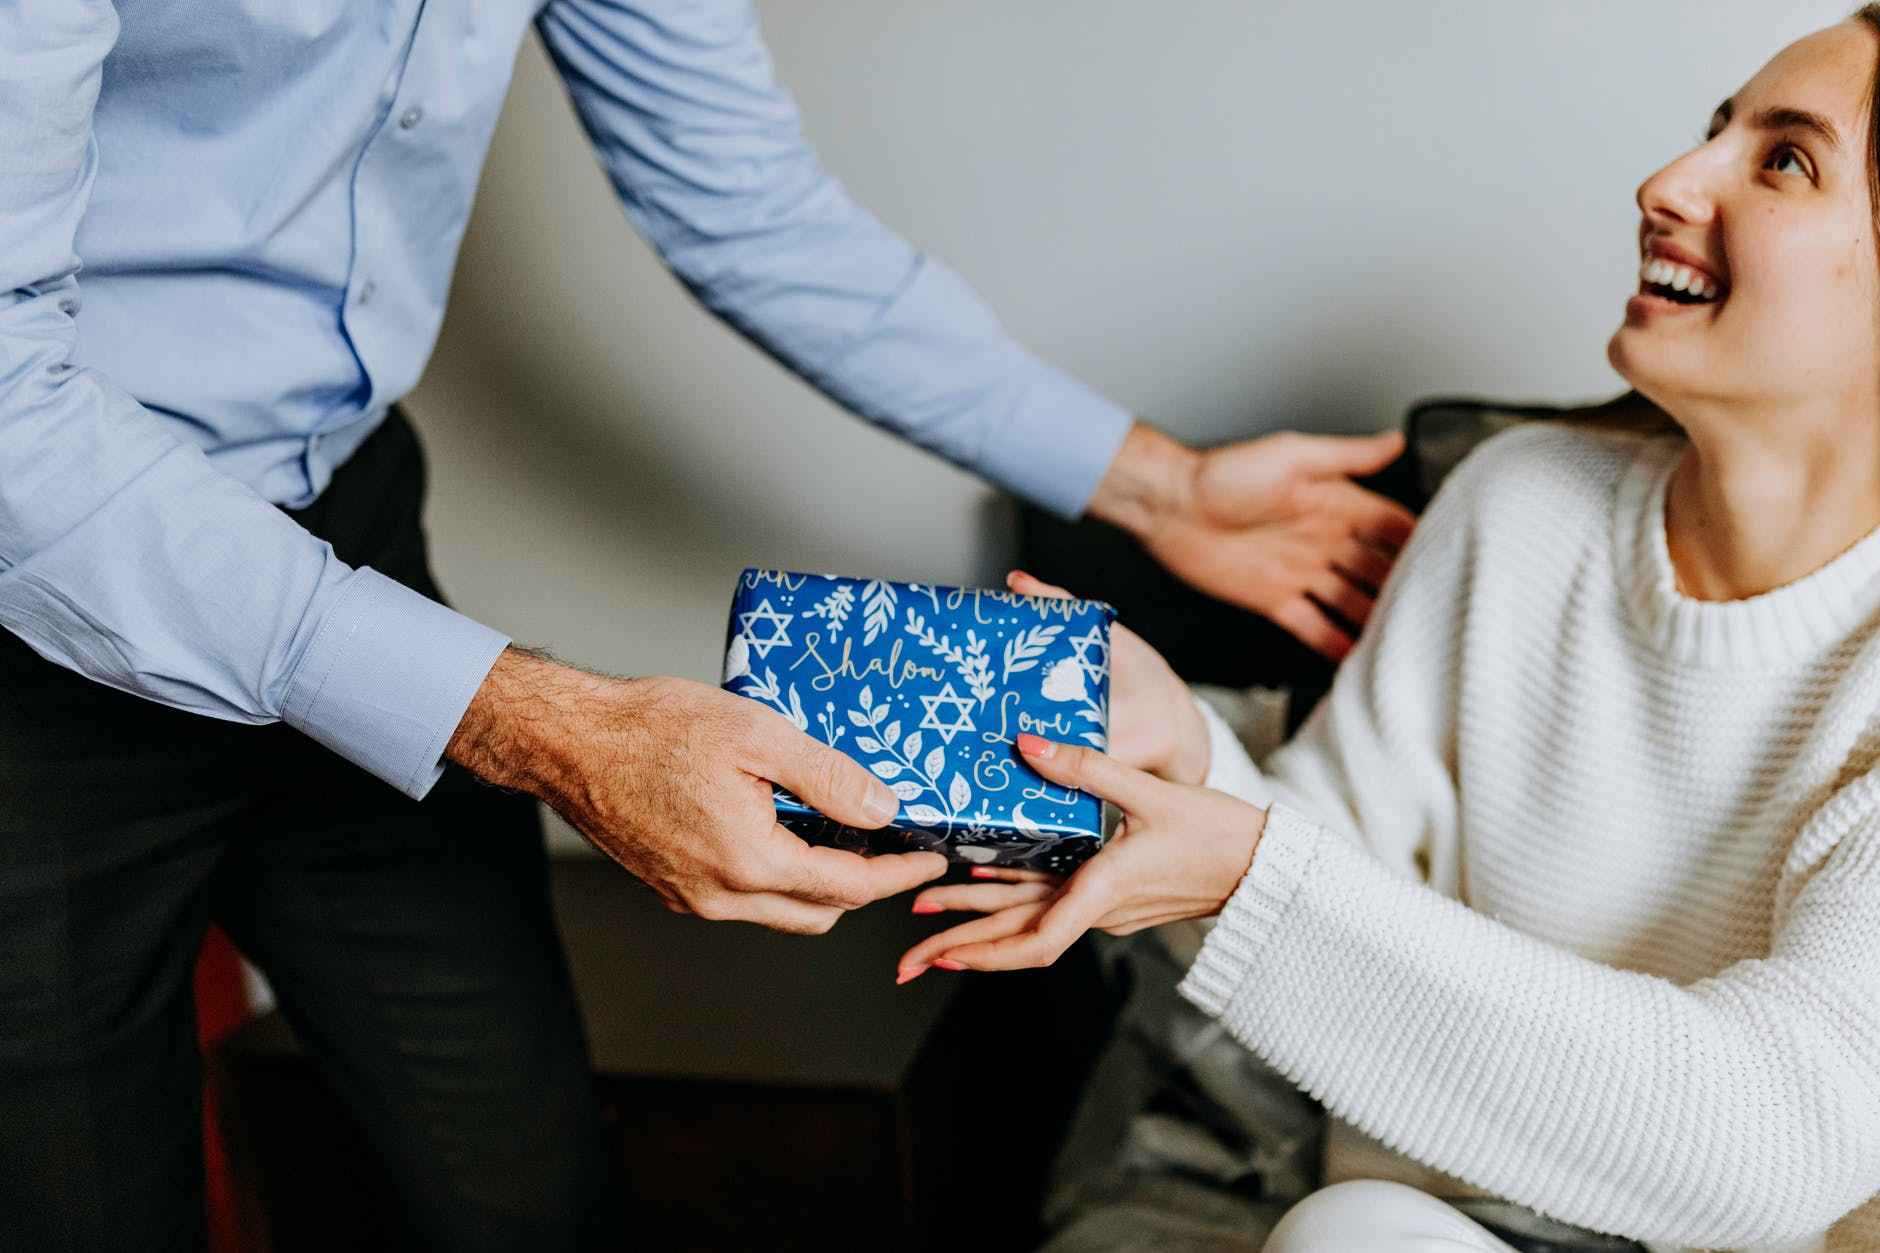 photo of person handing gift to woman